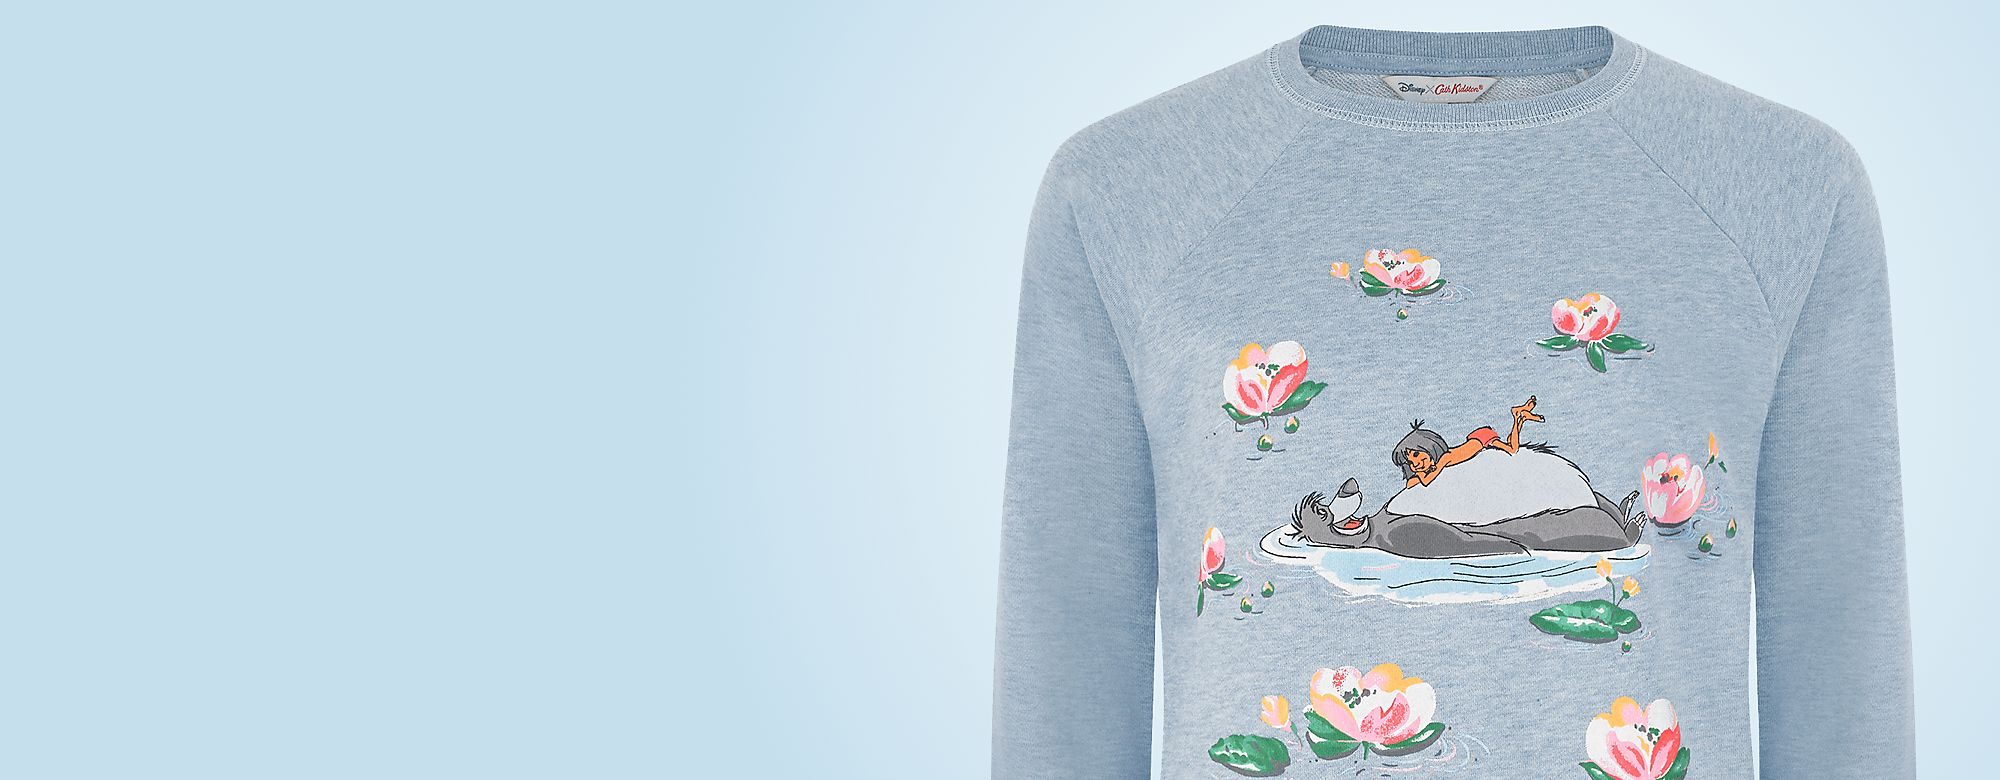 Cath Kidston x Disney Jungle Book Collection  SHOP ALL